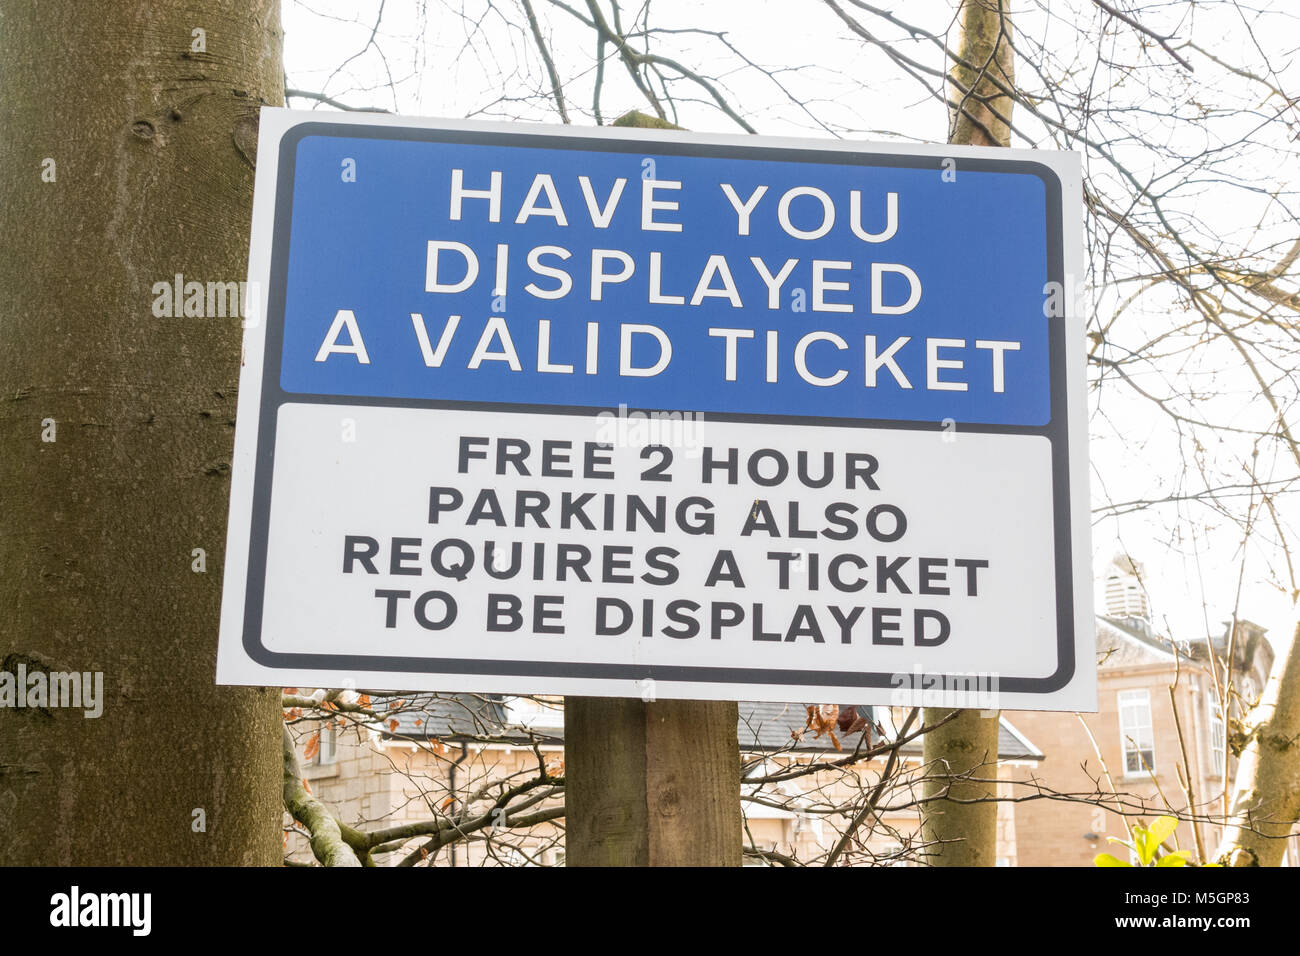 Sign warning that a ticket is required for free parking - Bearsden, Glasgow, Scotland, UK - Stock Image